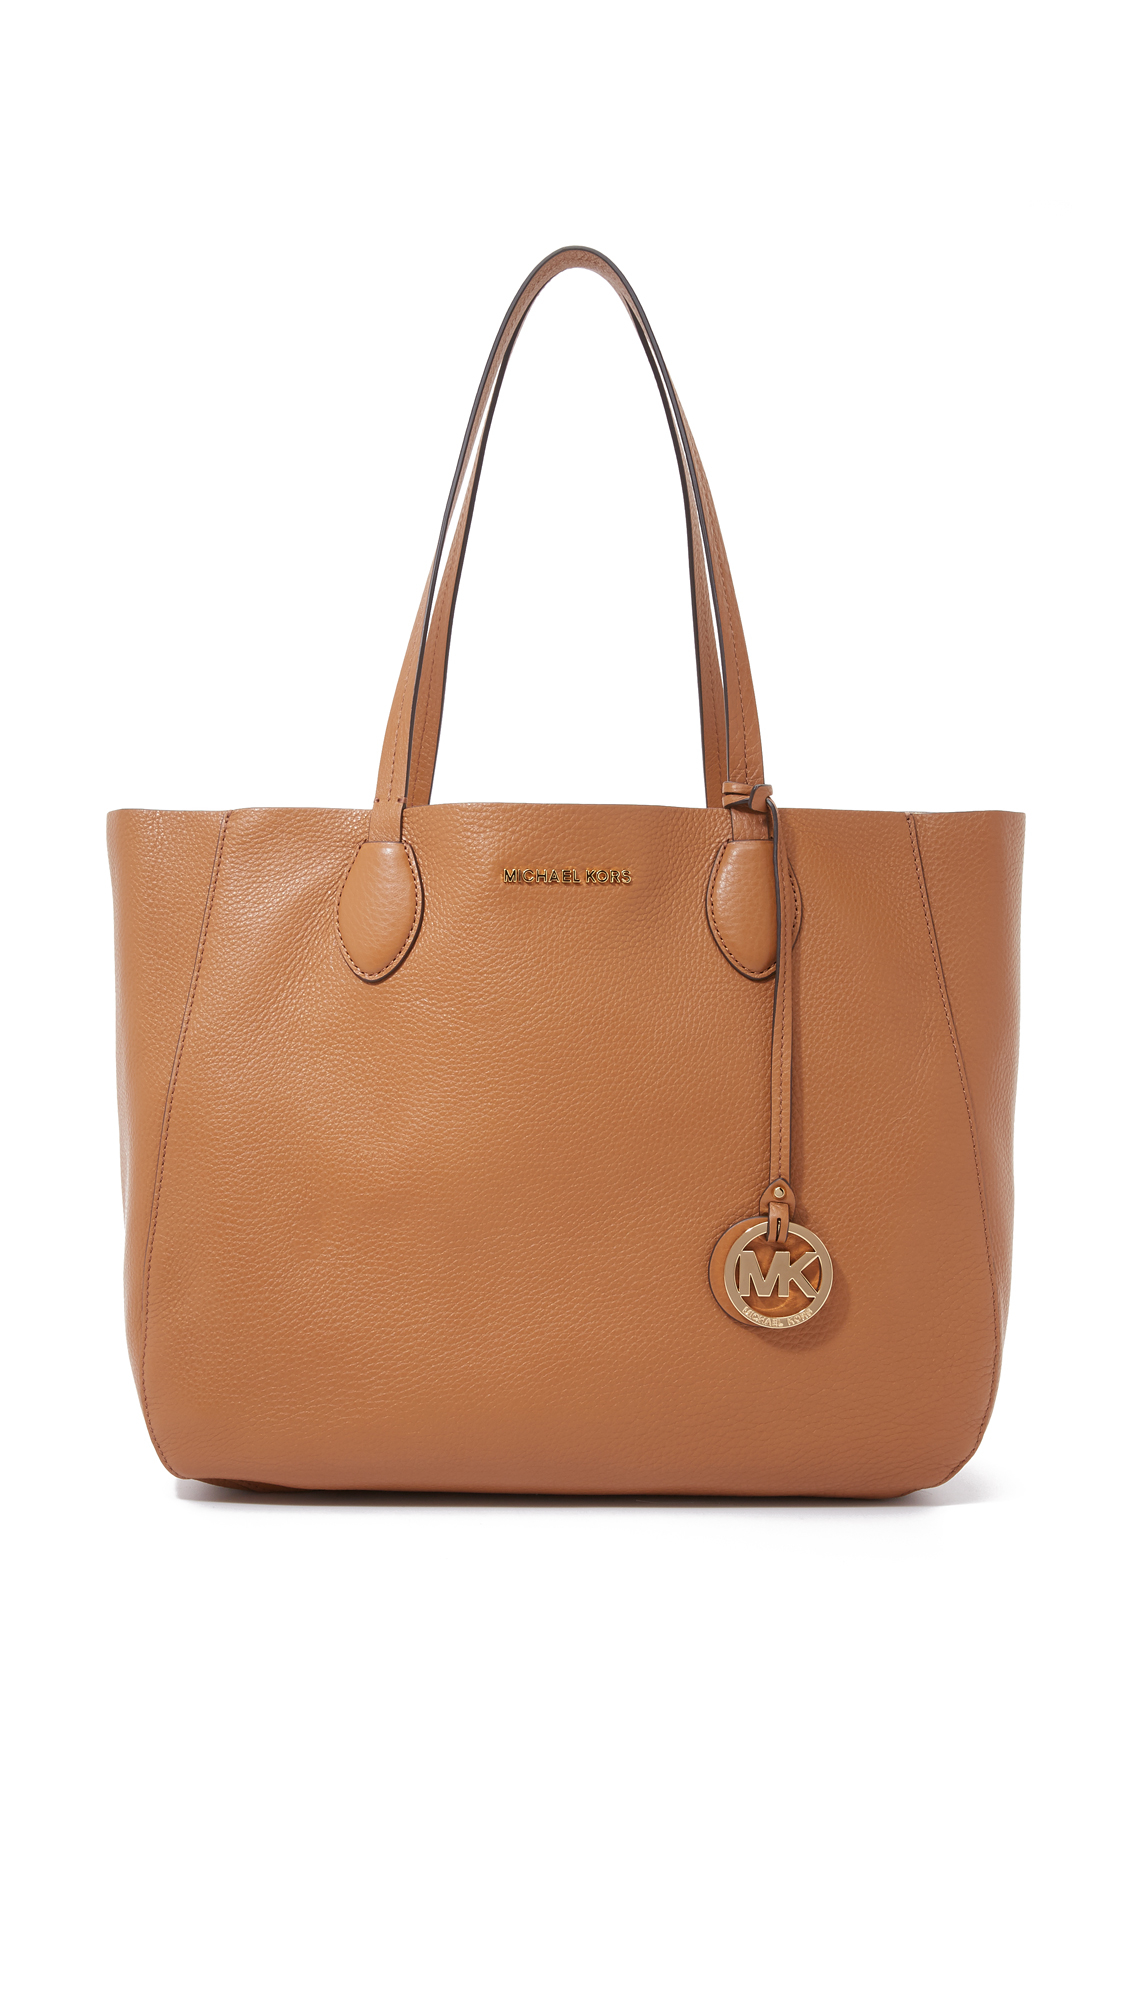 401aa1de60cb Michael Kors Reversible Tote Macys | Stanford Center for Opportunity ...